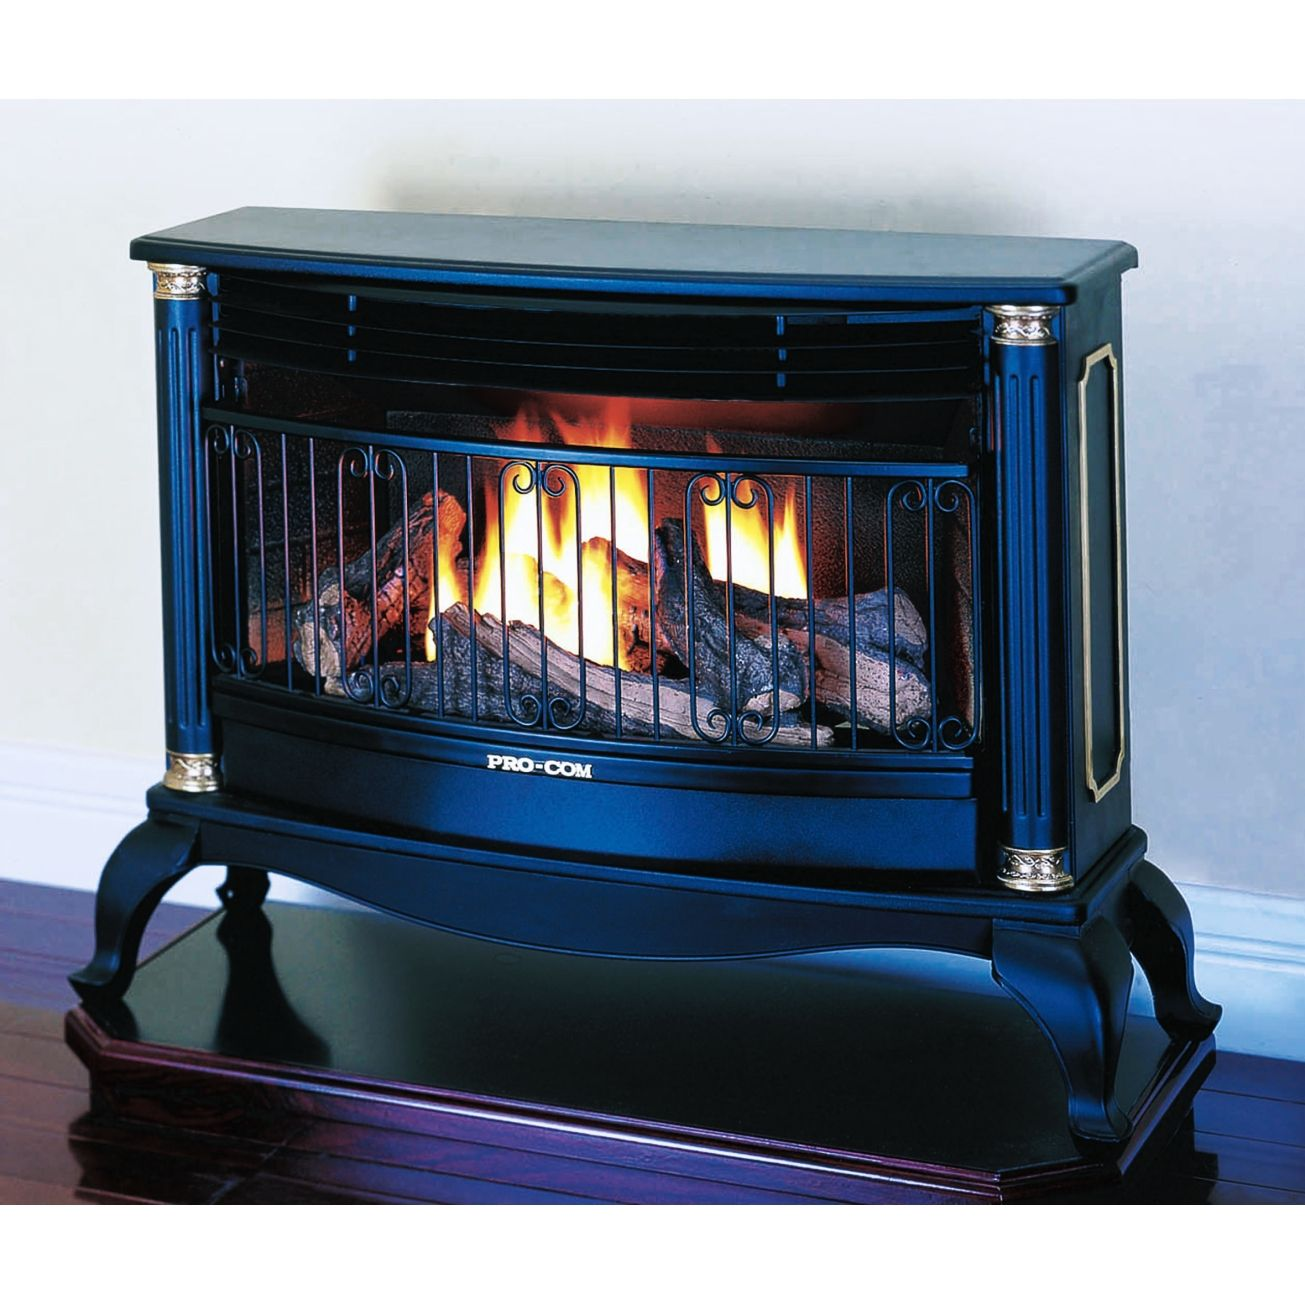 Duel Fuel Vent Free Fireplace From Procom At Ace Hardware Gas